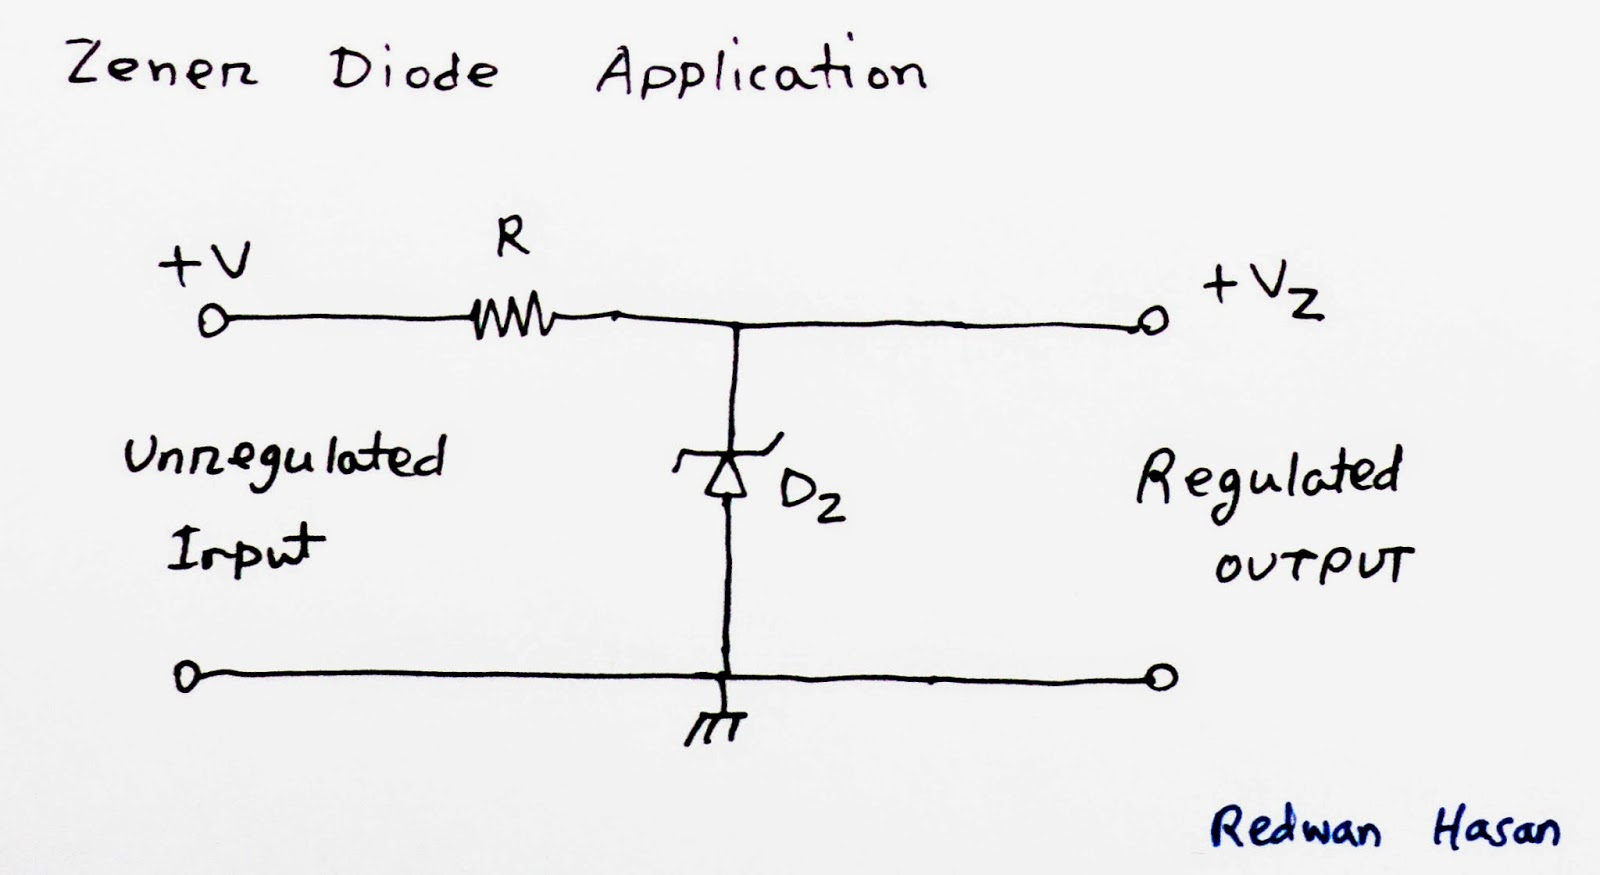 medium resolution of in the figure above we will just give different voltage levels as input say we are using a source which has a voltage of 10v 15v